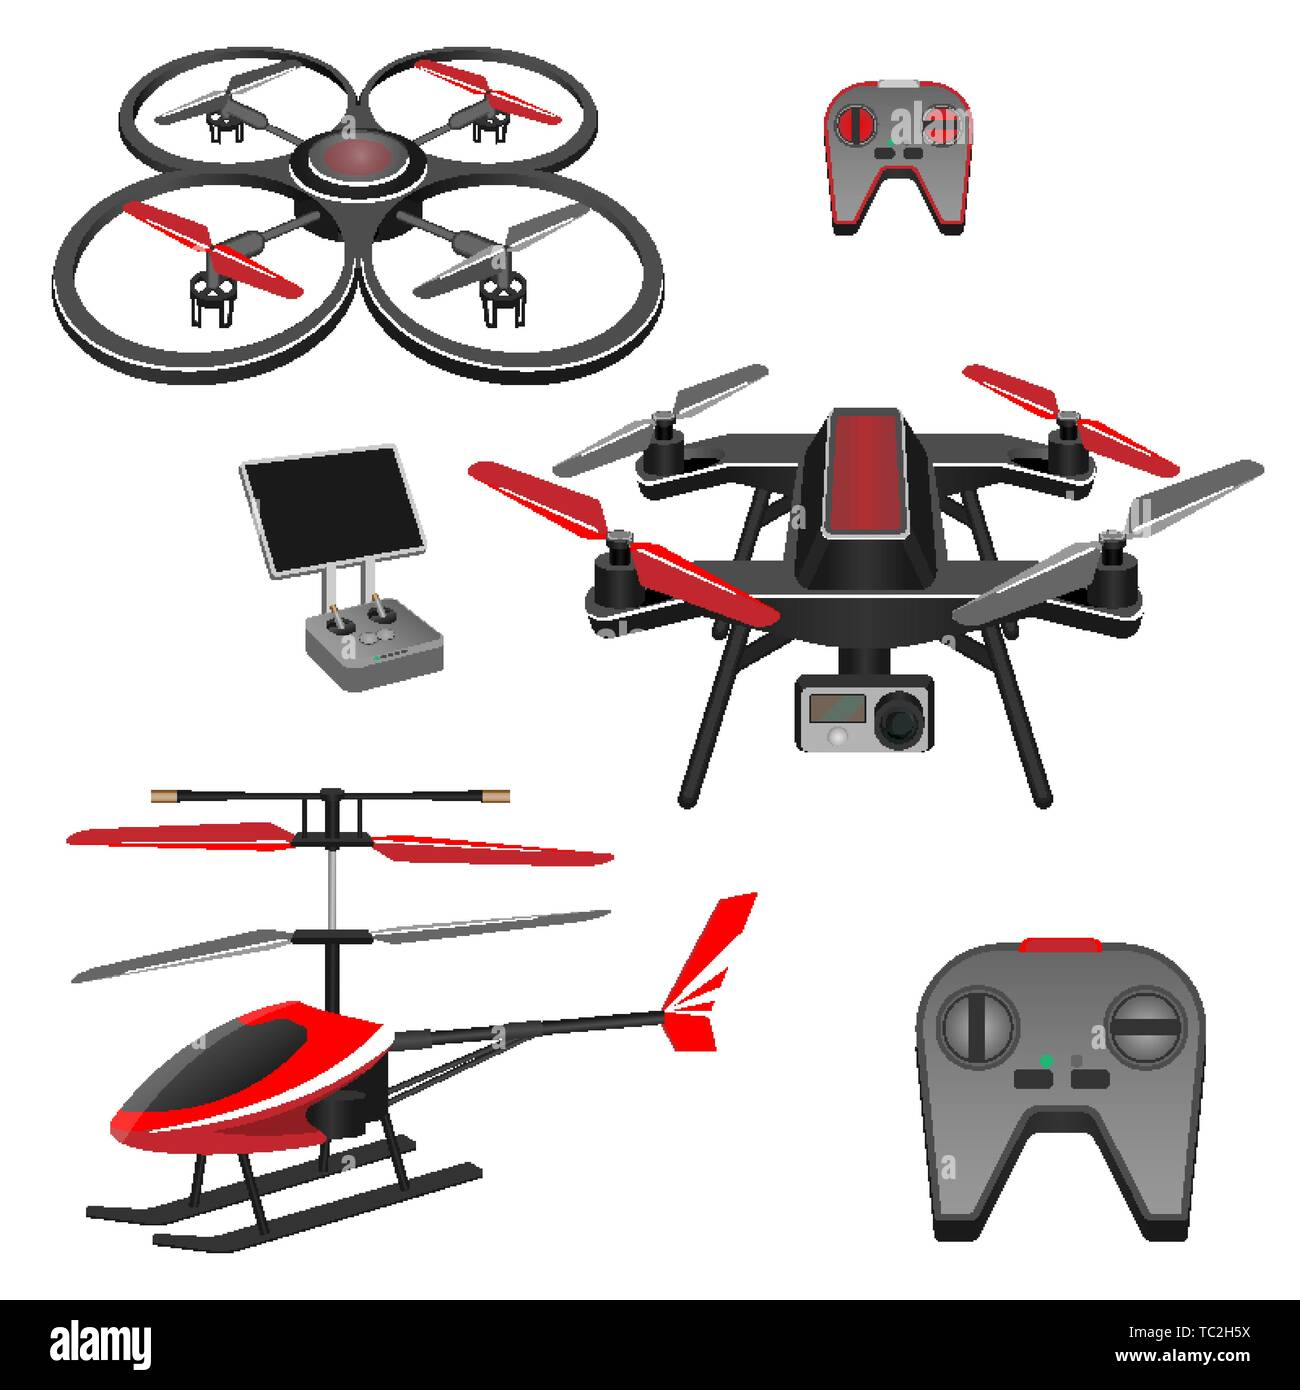 Helicopter and quadrocopter, quadcopter with camera, remote controls set - Stock Image